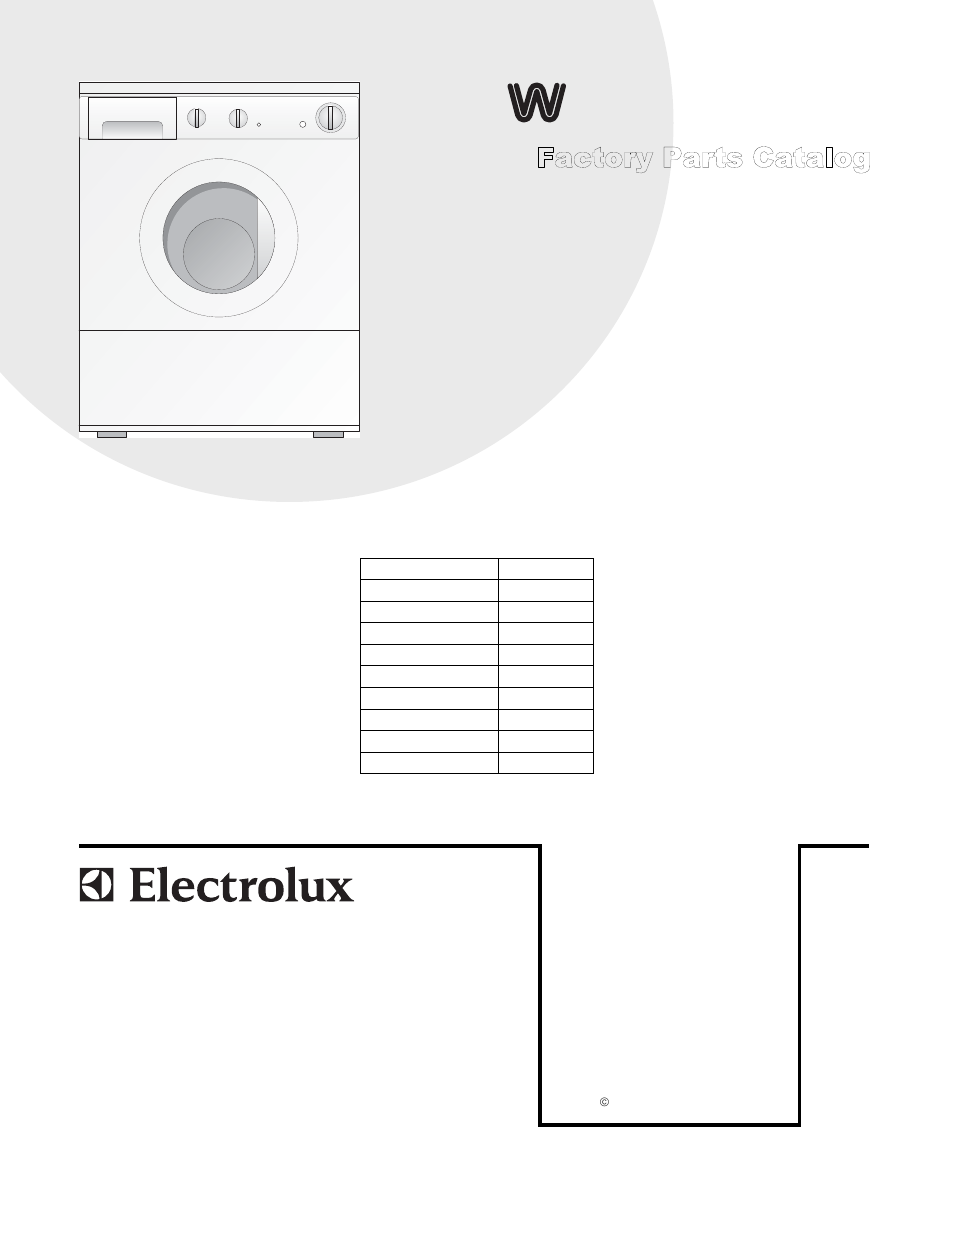 electrolux wtf330hs0 user manual 9 pages rh manualsdir com